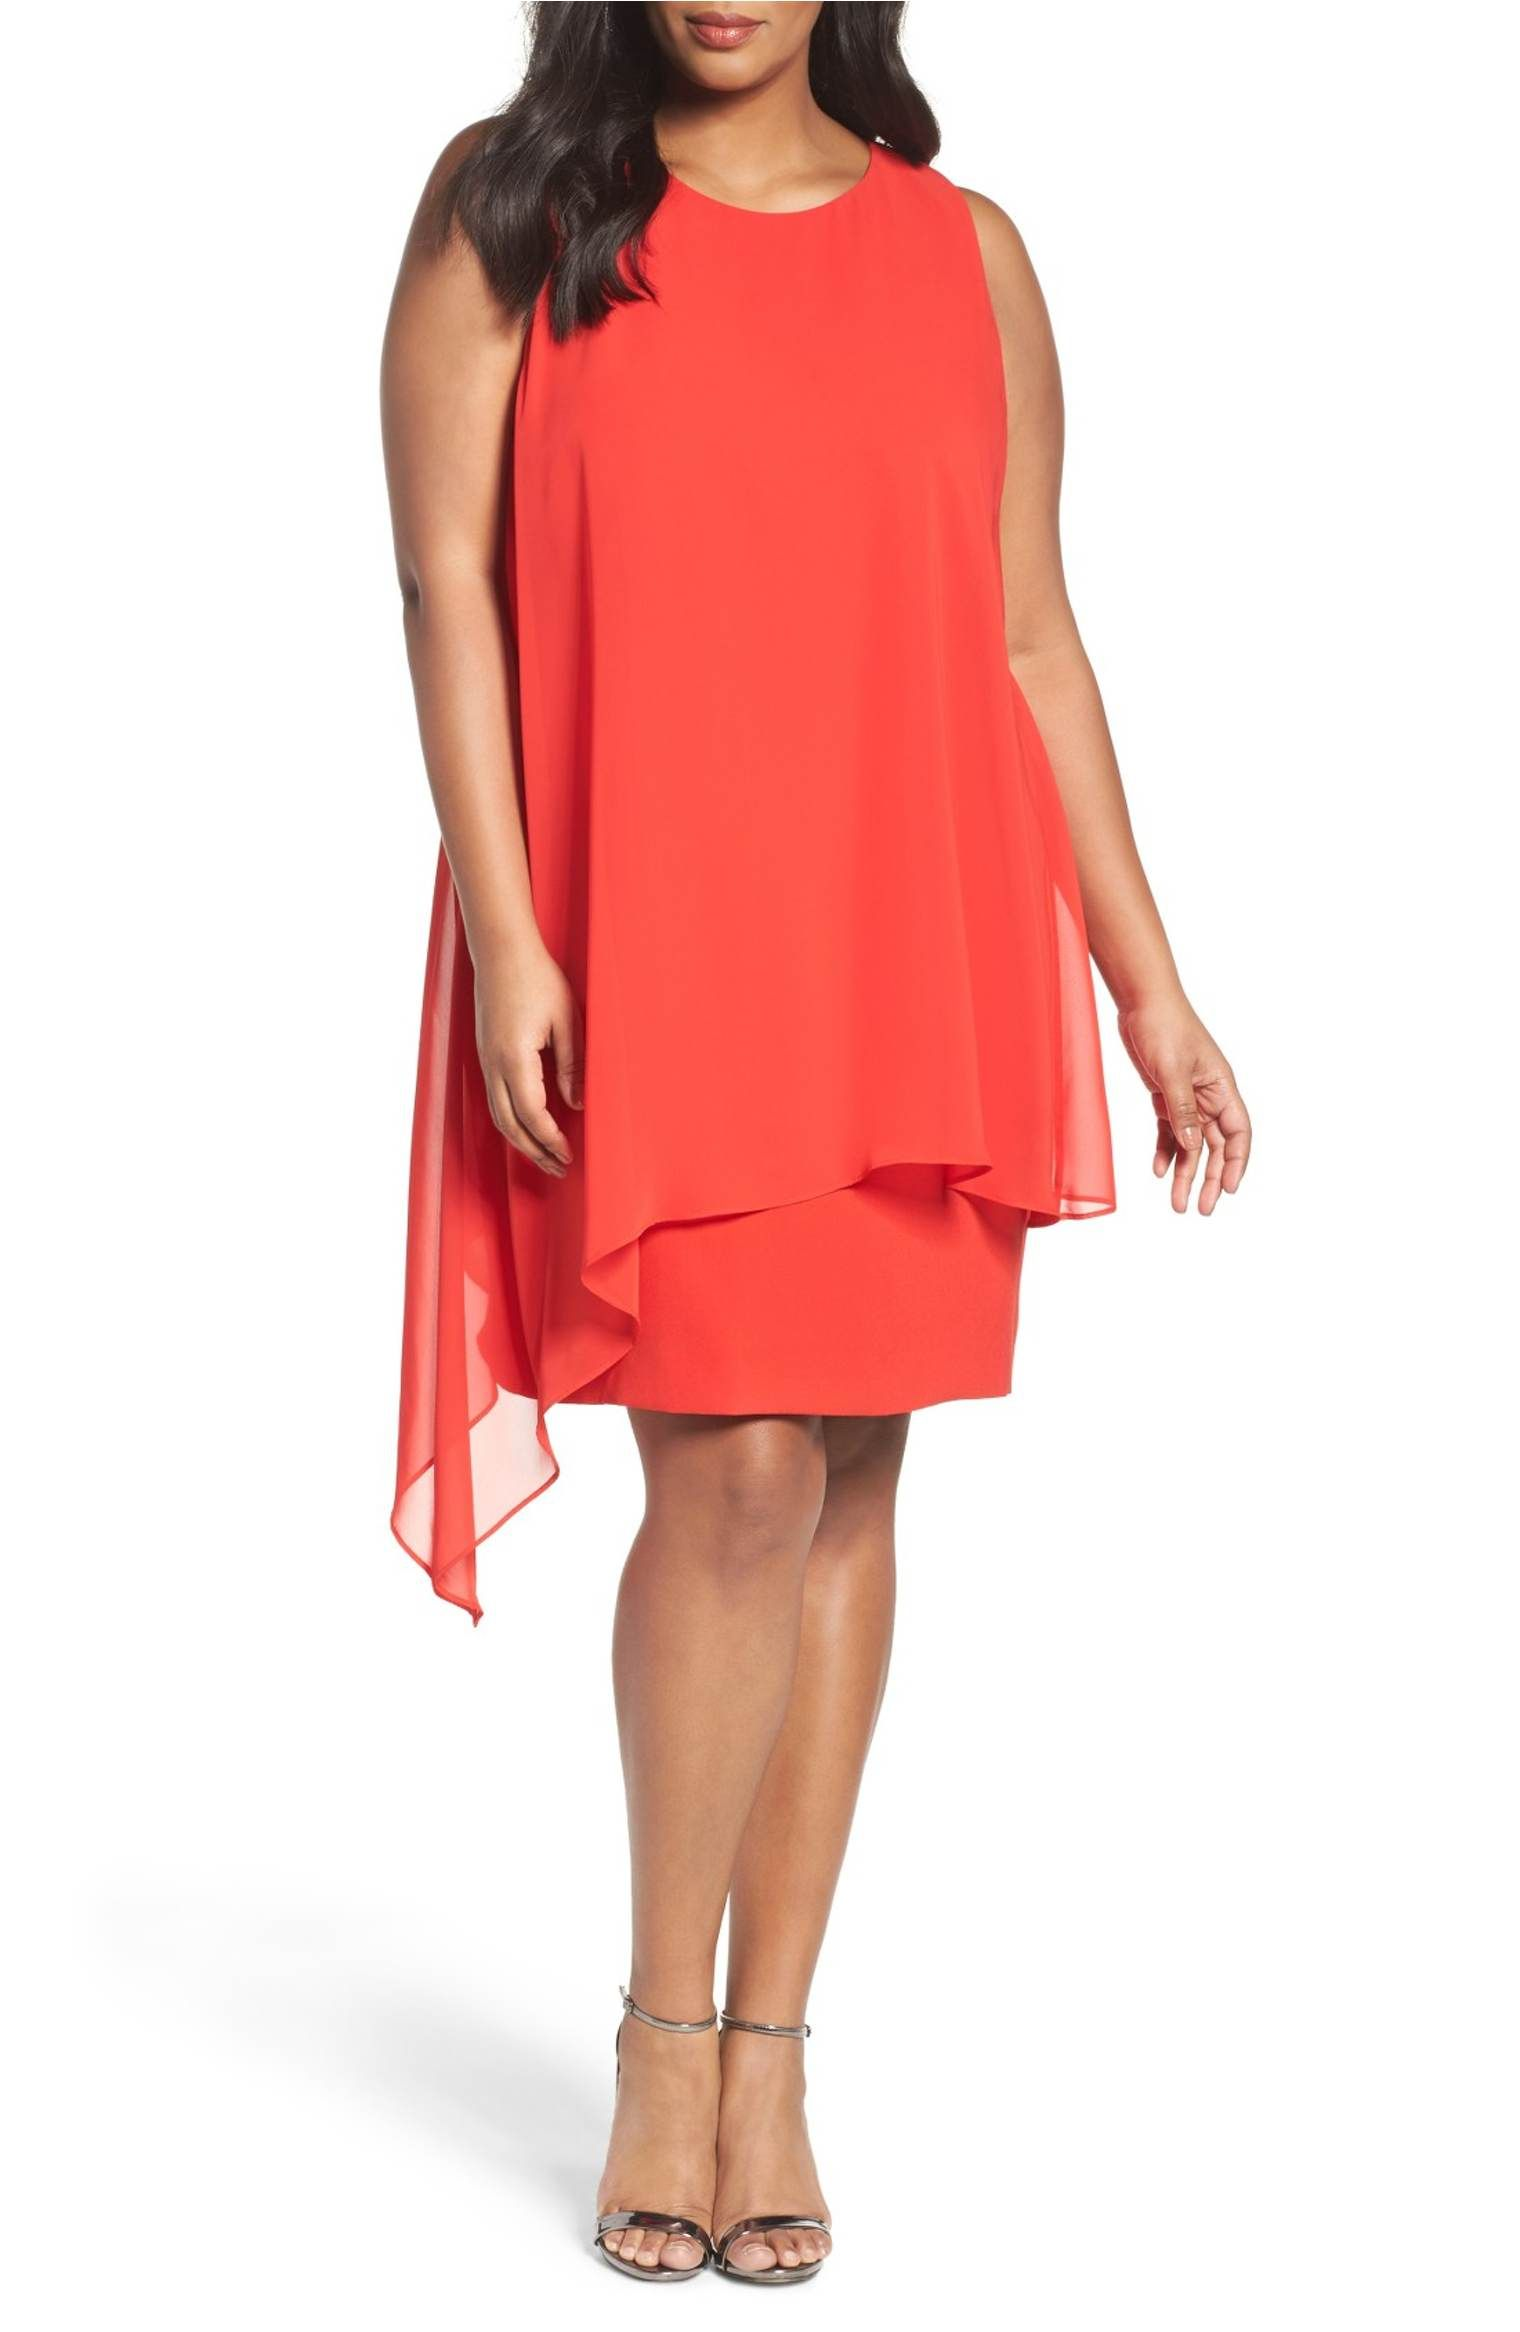 Tahari Plus Size Dresses